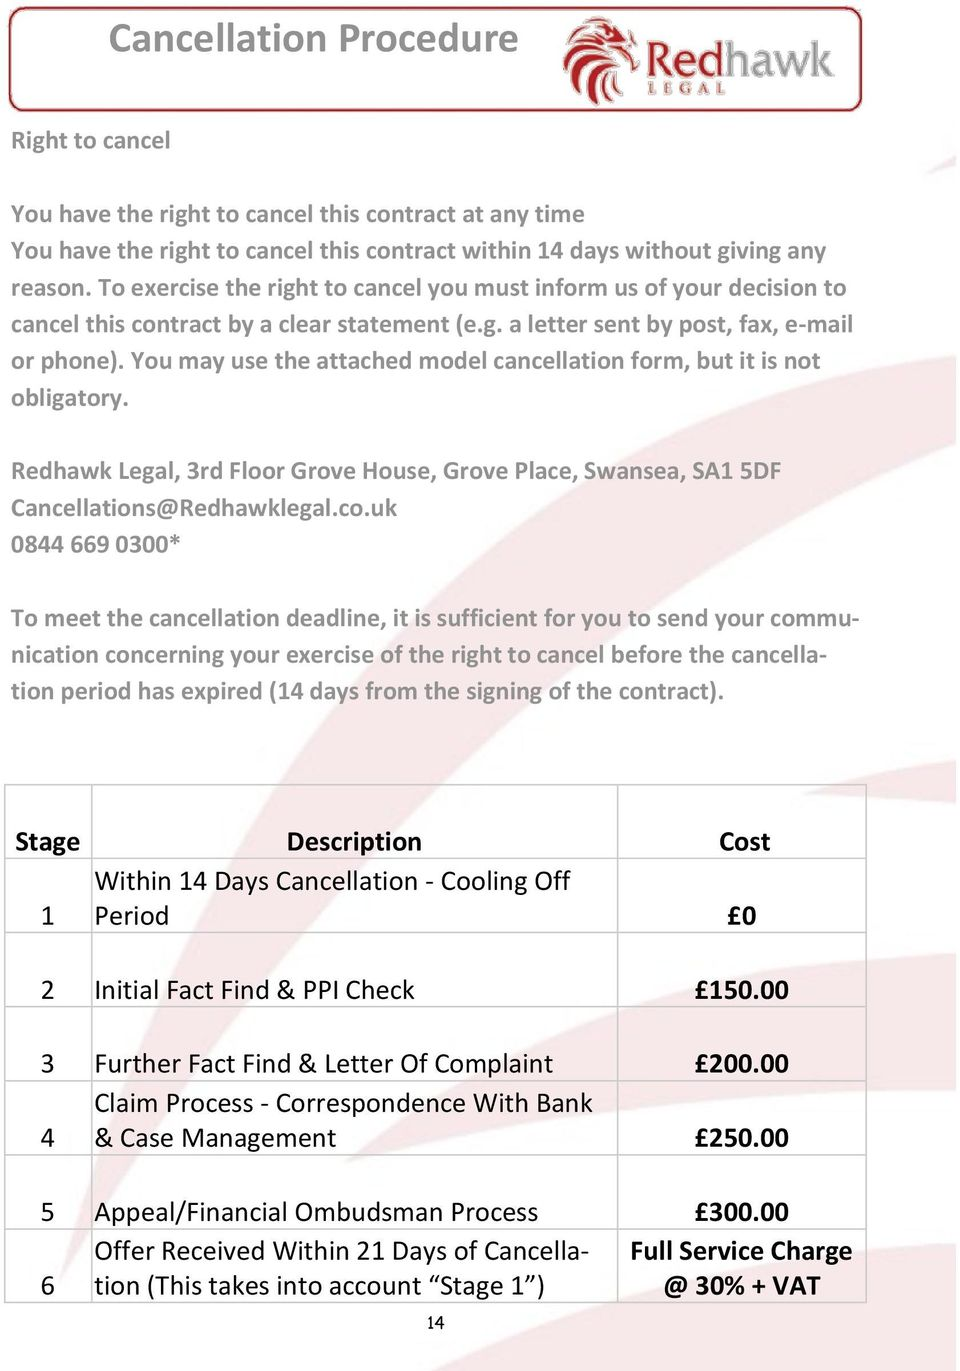 You may use the attached model cancellation form, but it is not obligatory. Redhawk Legal, 3rd Floor Grove House, Grove Place, Swansea, SA1 5DF Cancellations@Redhawklegal.co.